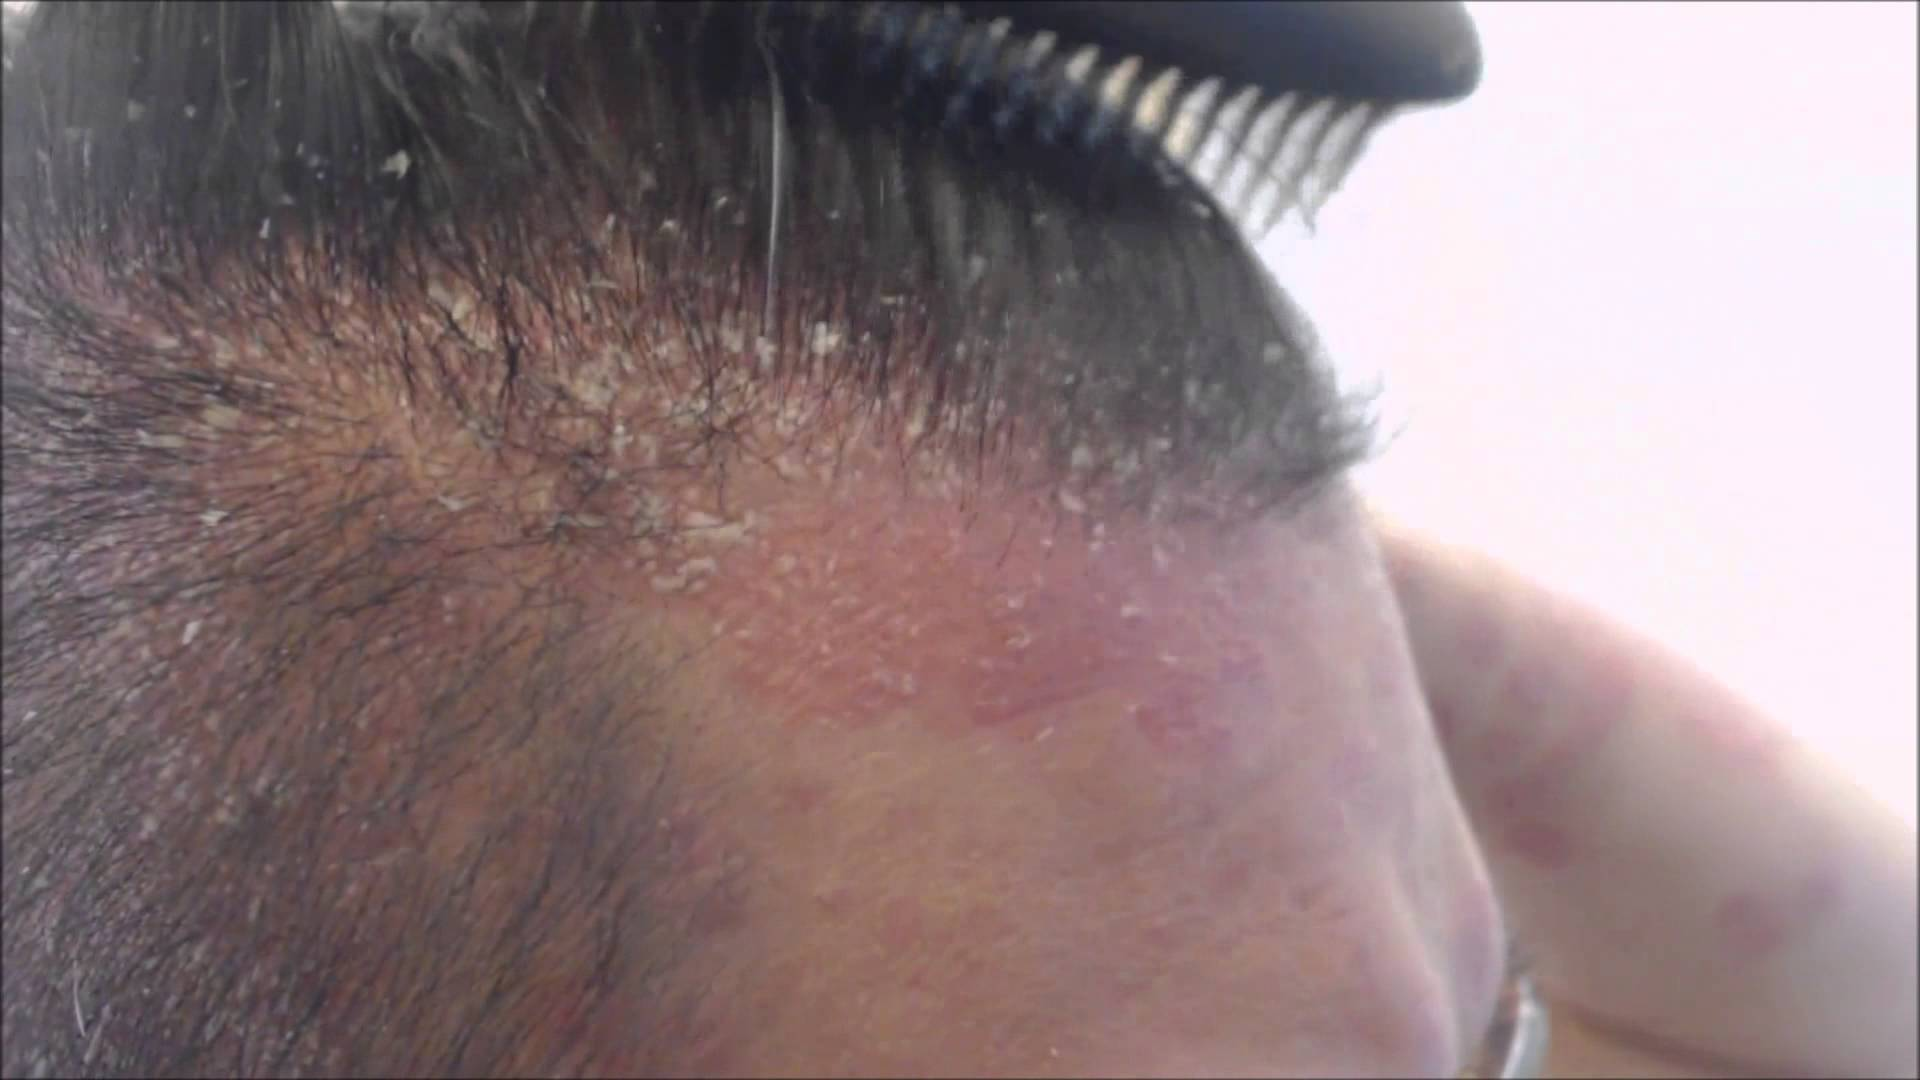 A man with scalp psoriasis